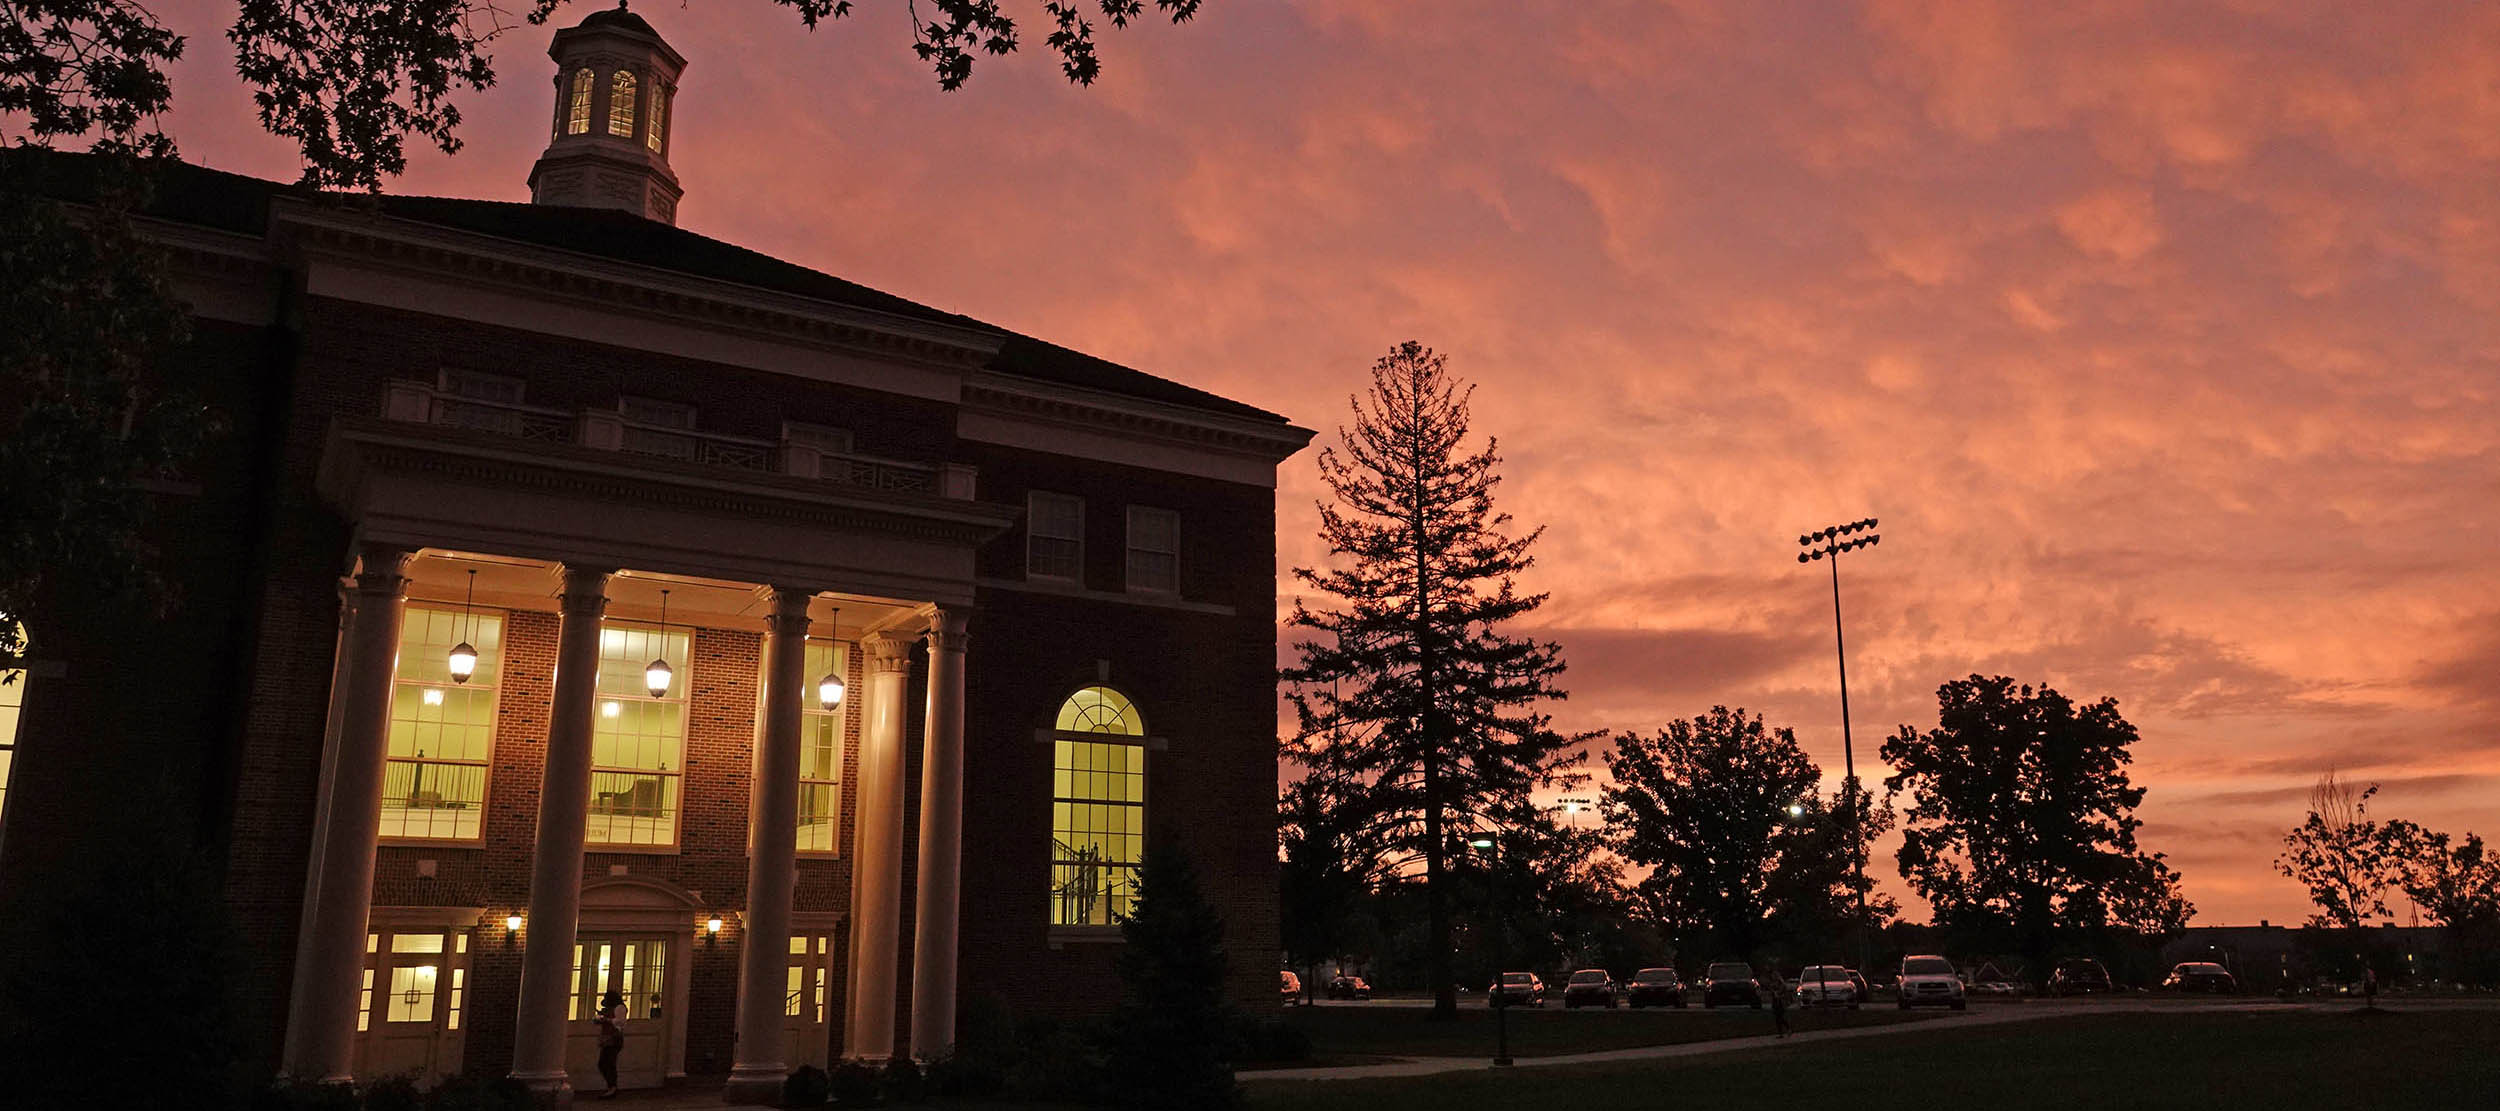 Taylor Auditorium during an orange-sky sunrise